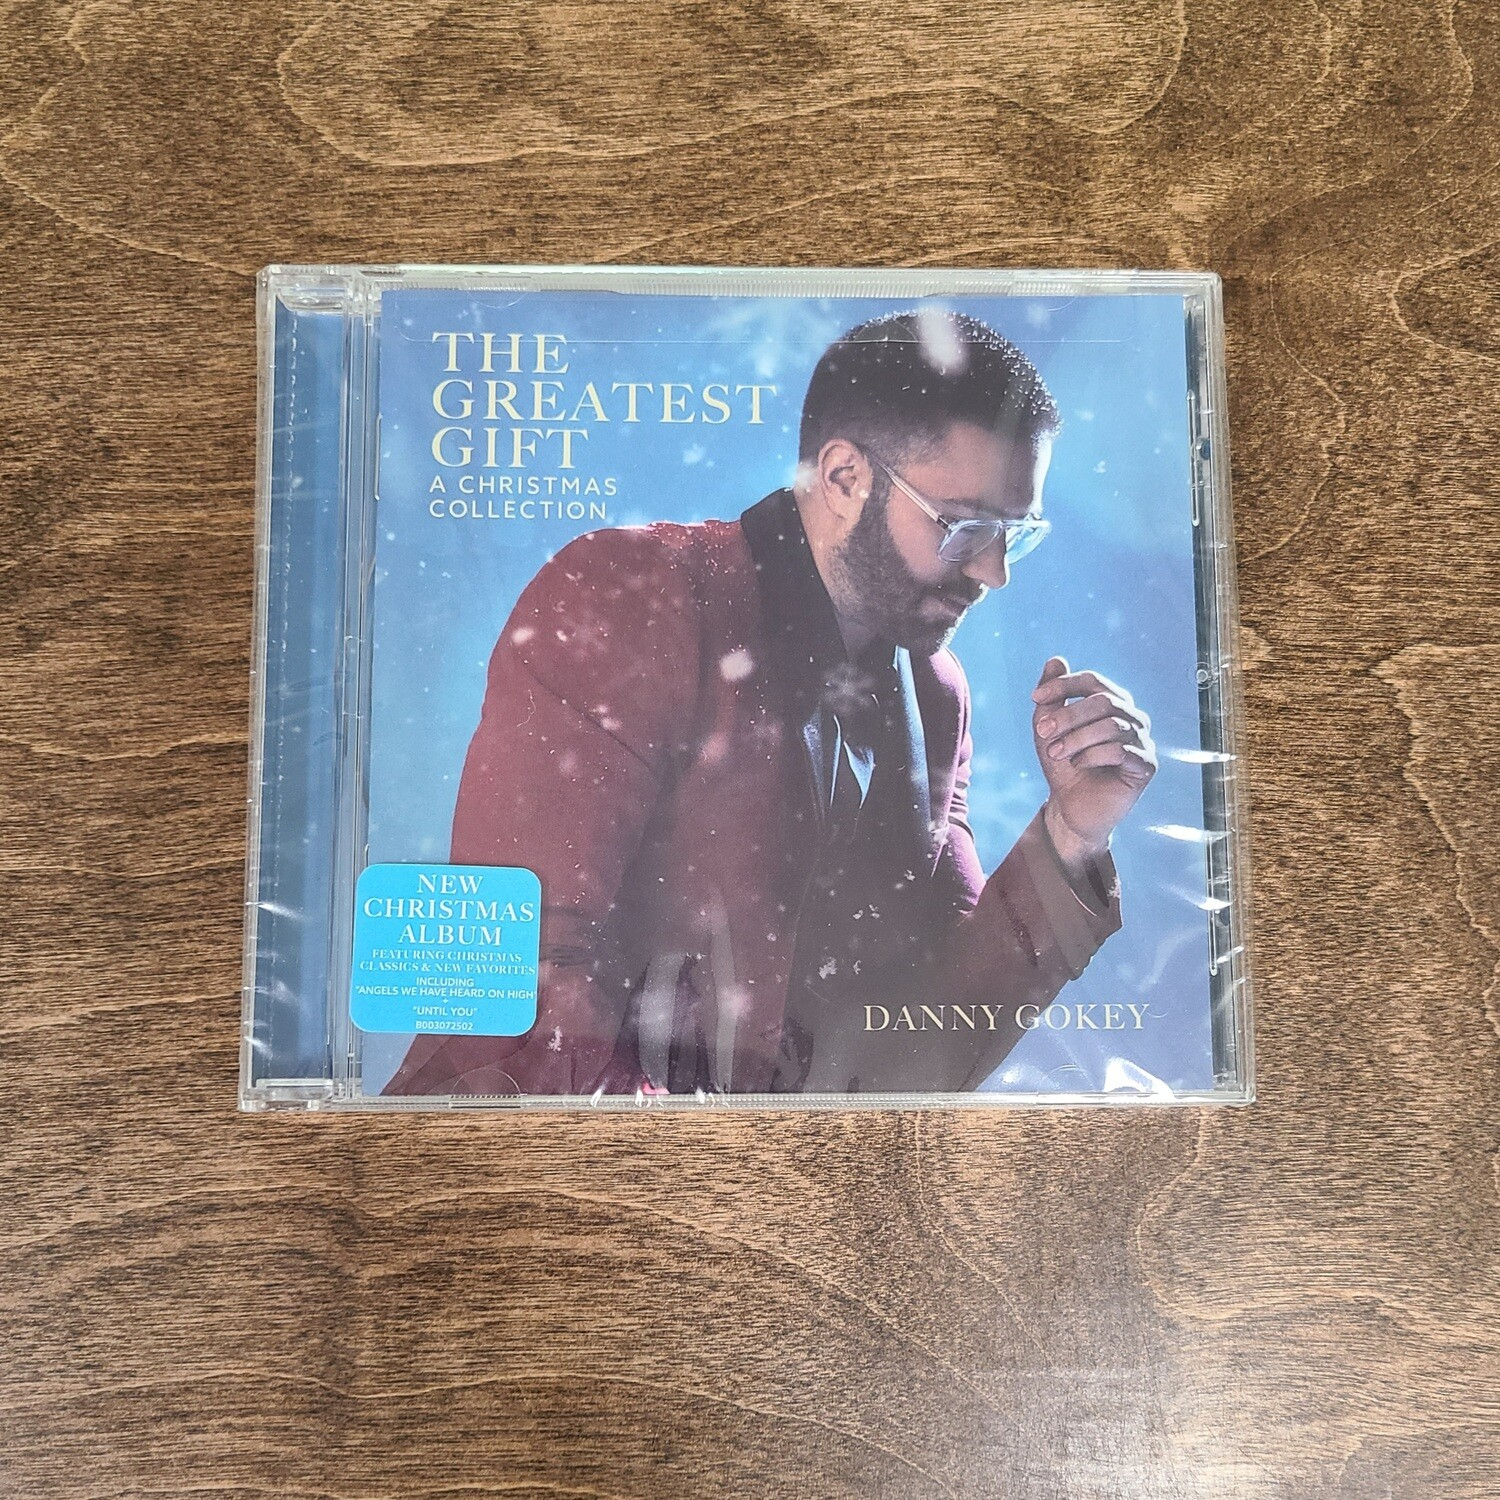 The Greatest Gift: A Christmas Collection by Danny Gokey CD